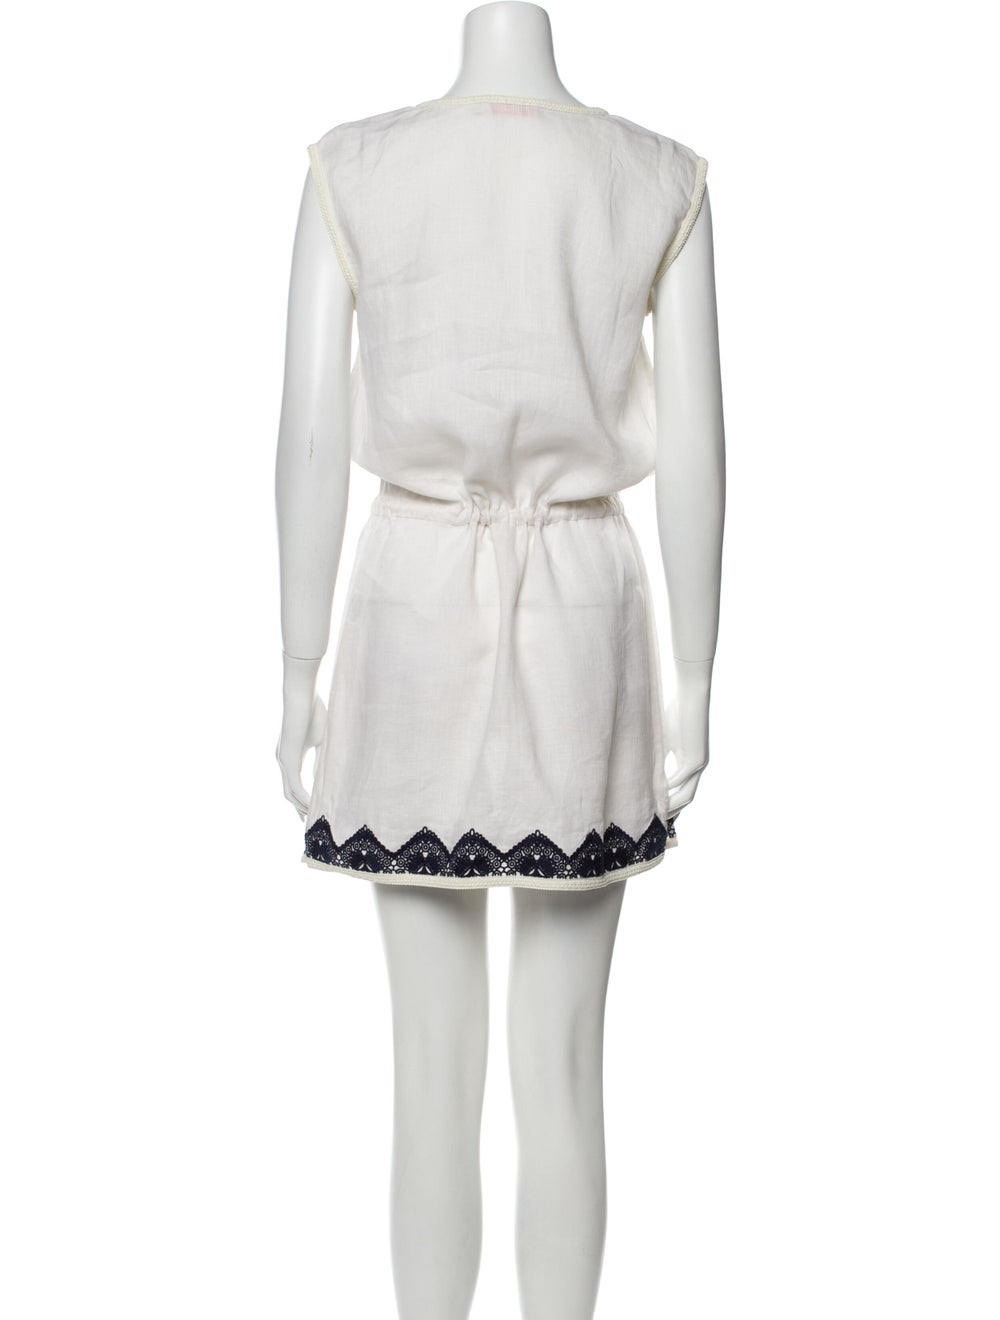 Tory Burch Linen Mini Dress White - image 3